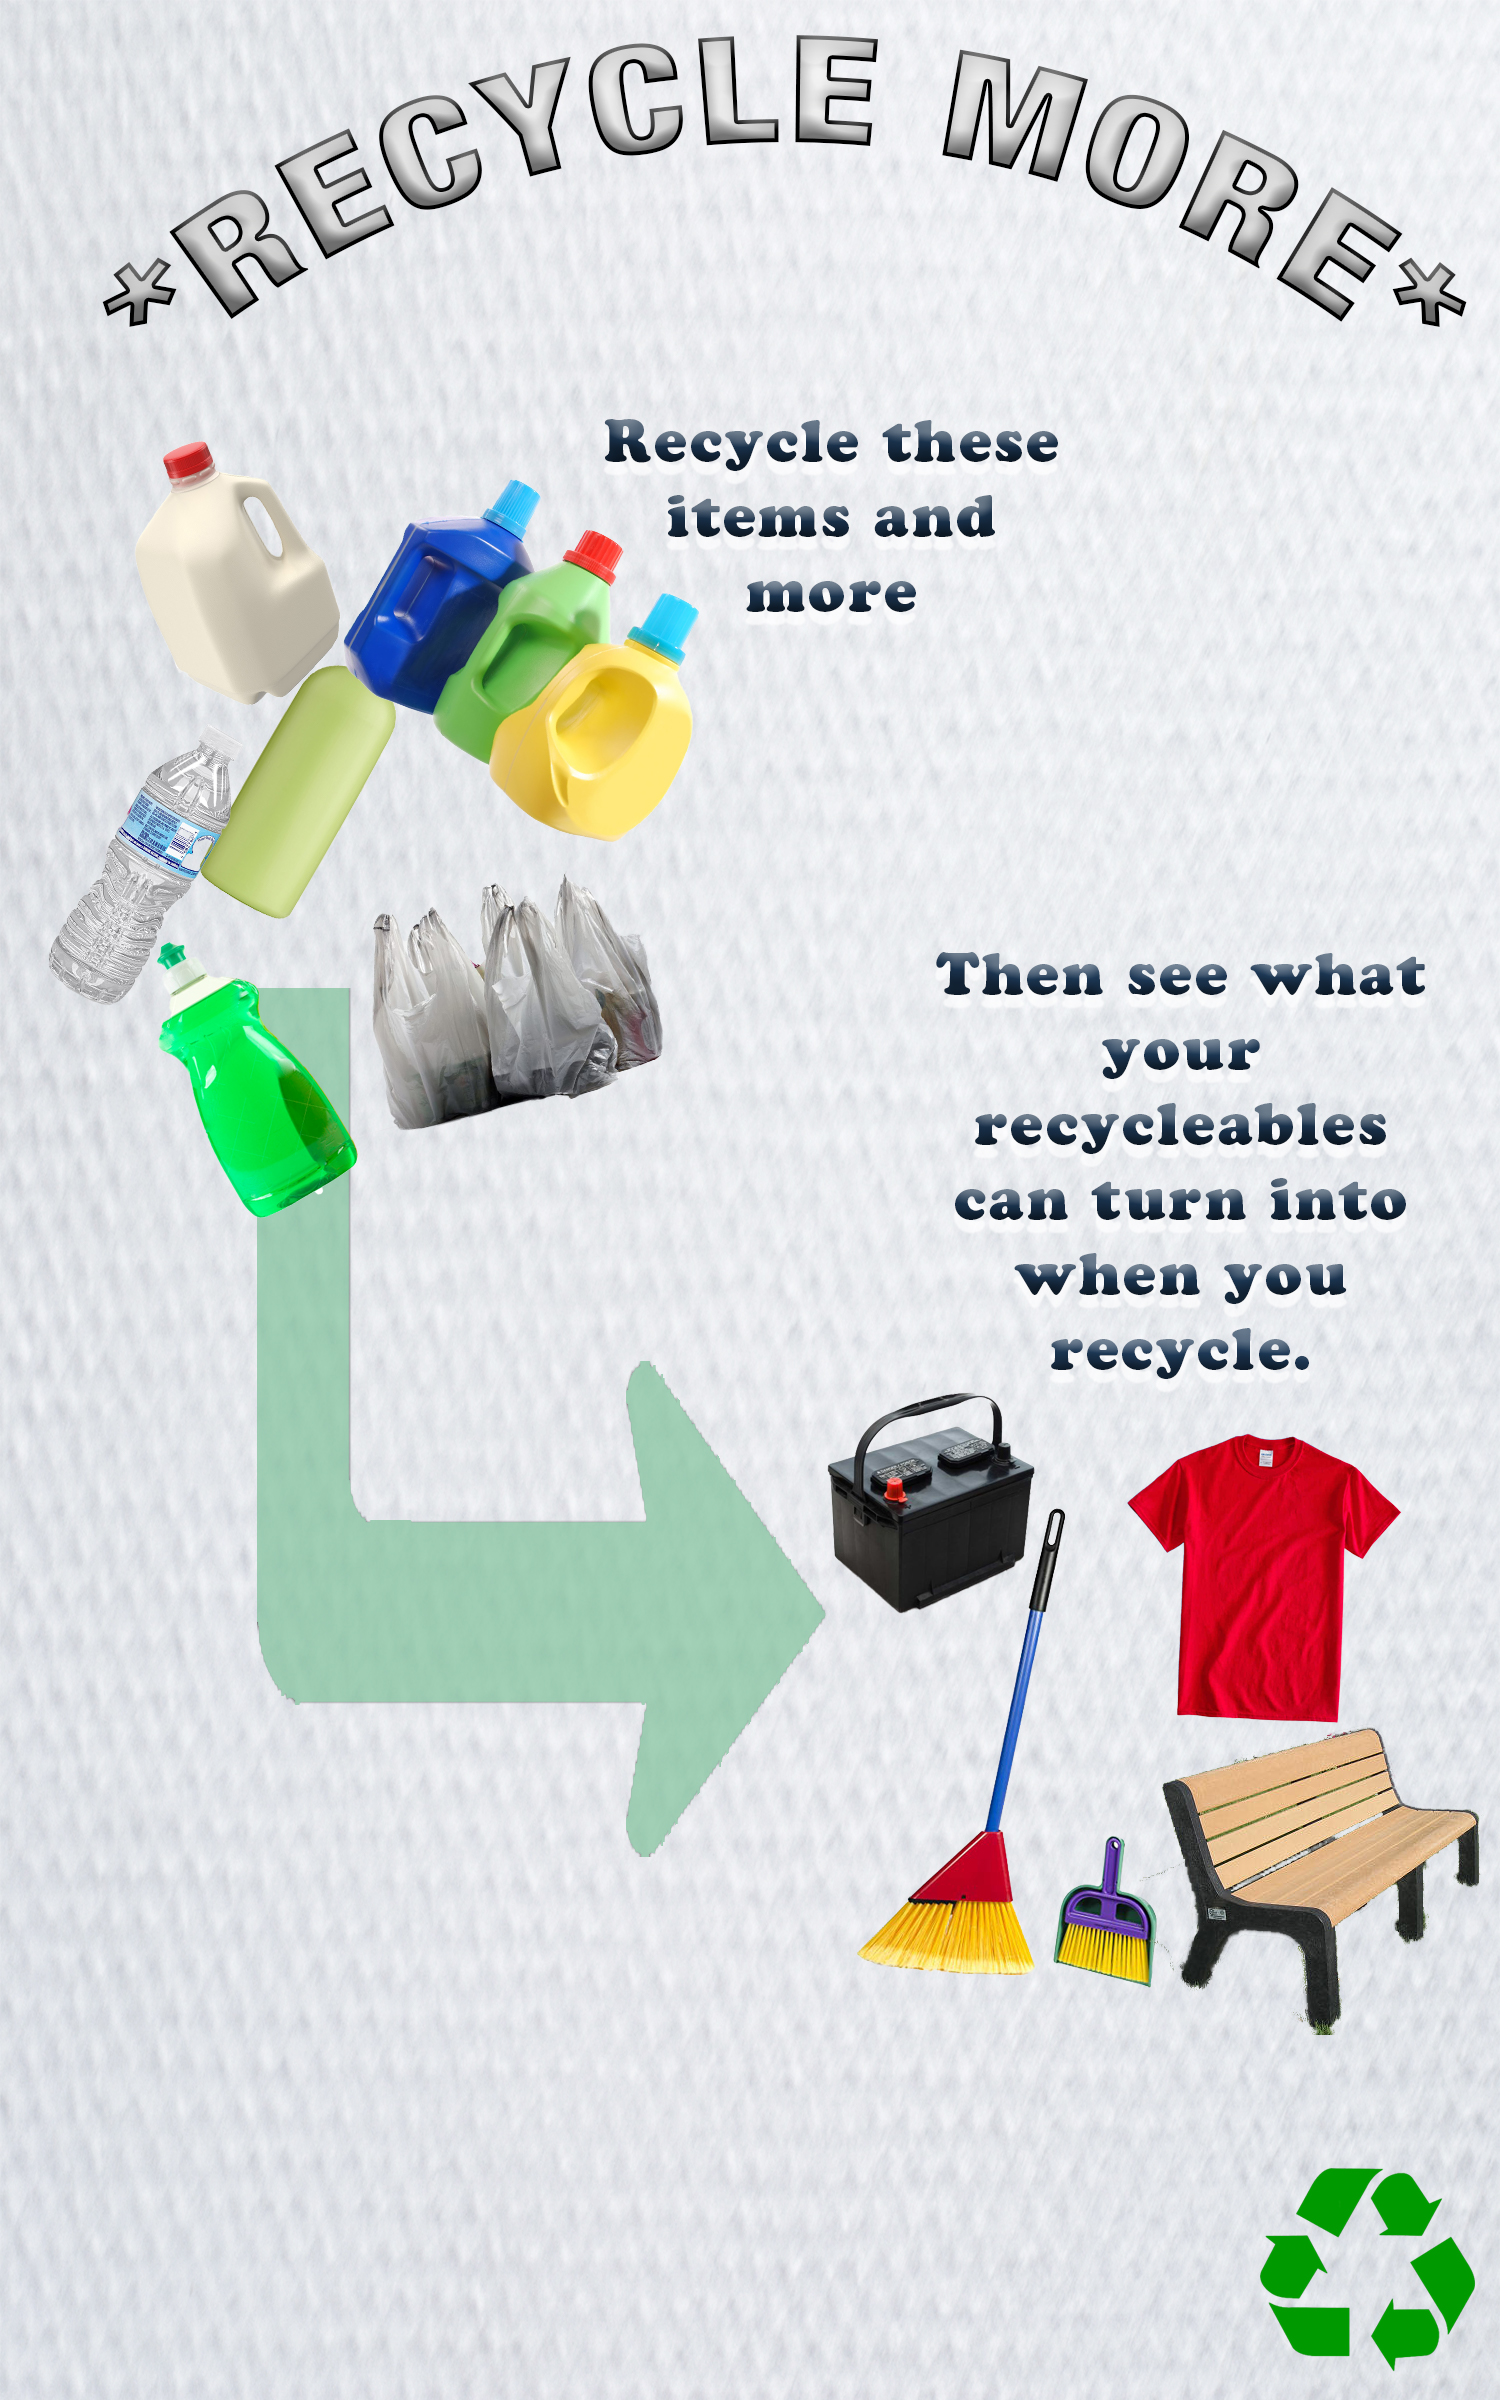 "Graphic emphasizing the need to recycle more. It shows various items such as milk cartons, plastic water bottles and plastic bags. Text next to these items reads, ""Recycle these items and more,"" with an arrow pointing to more items such as a t-shirt, park bench, and broom. The text next to these items reads, ""Then see what your recyclables can turn into when you recycle."""